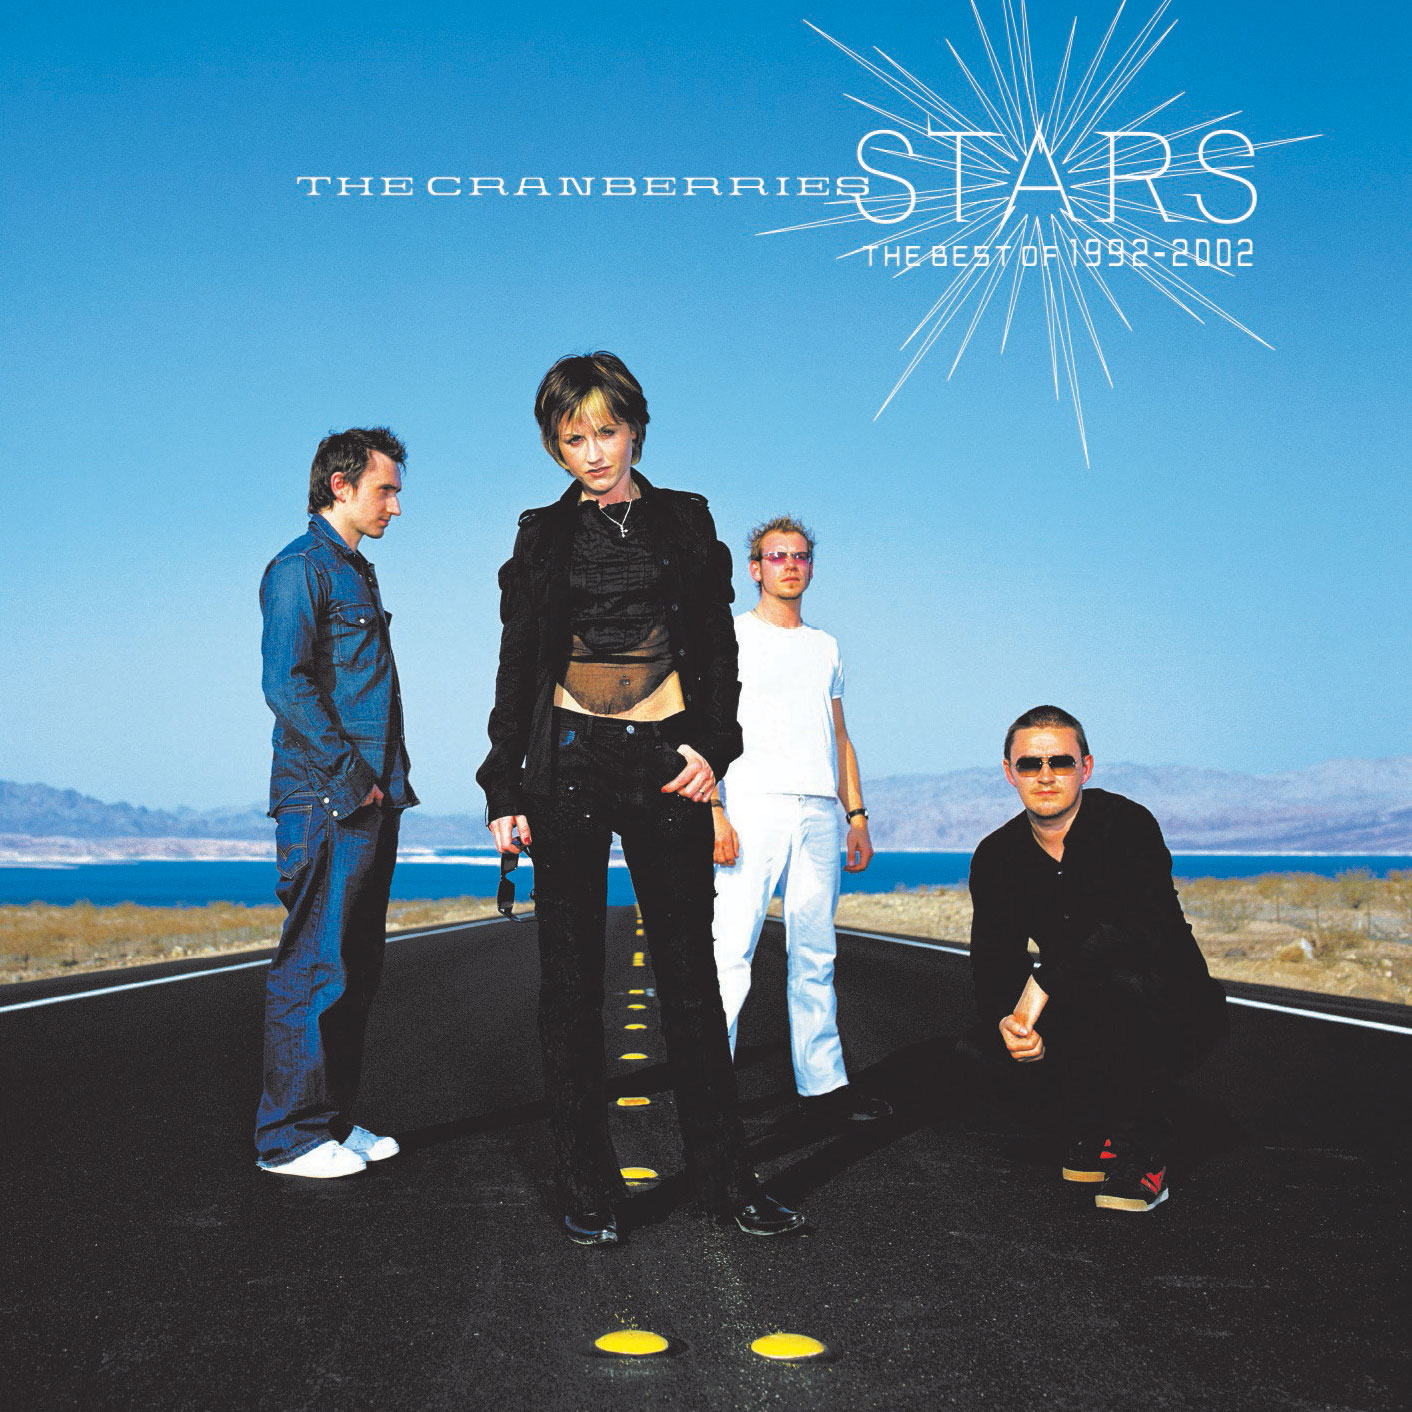 The Cranberries Stars - The Best Of 1992-2002 Numbered Limited Edition Hybrid Stereo Japanese Import SACD